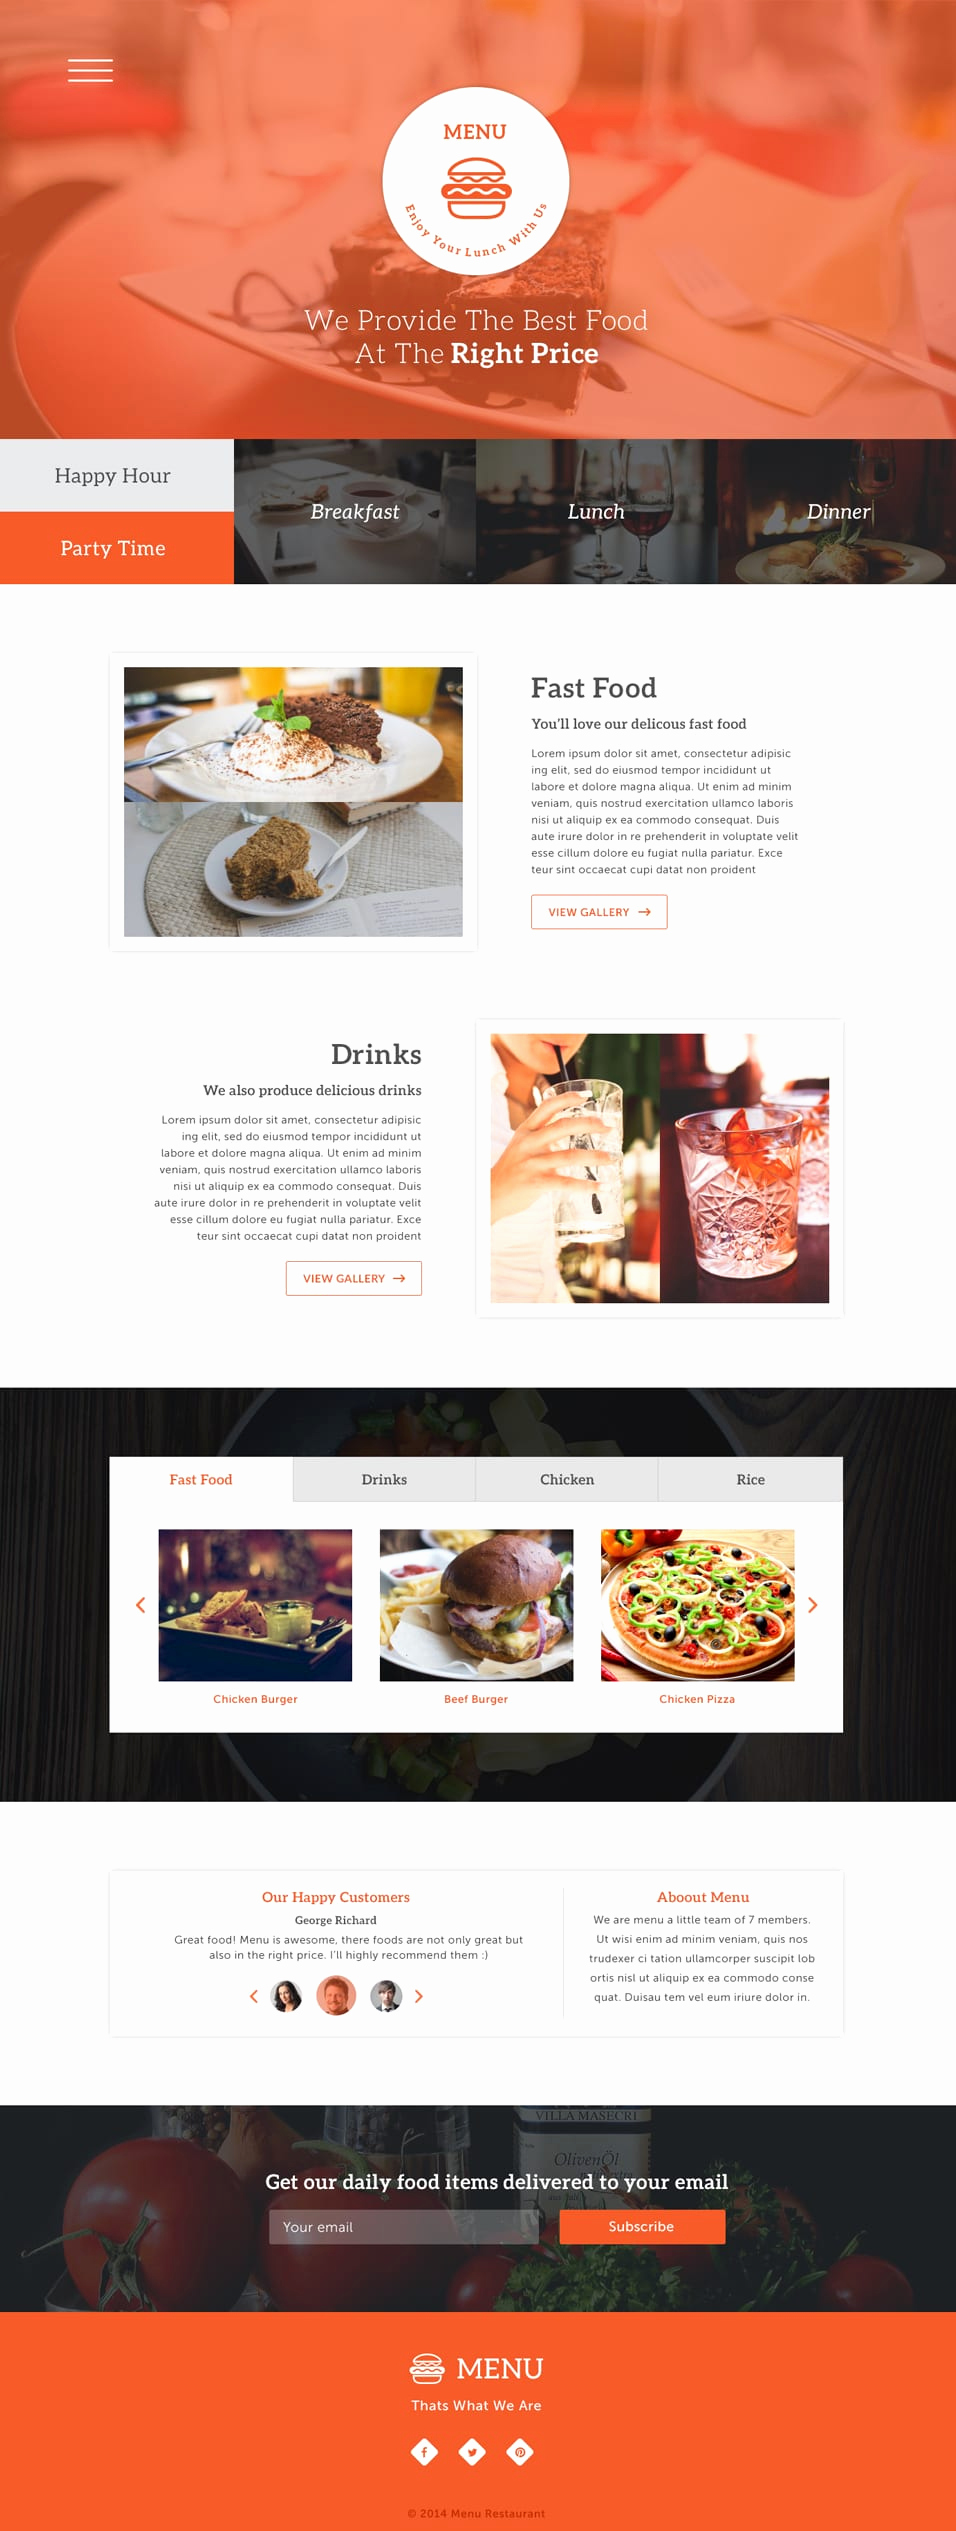 One Page Menu Template Beautiful Latest Free Web Elements From November 2014